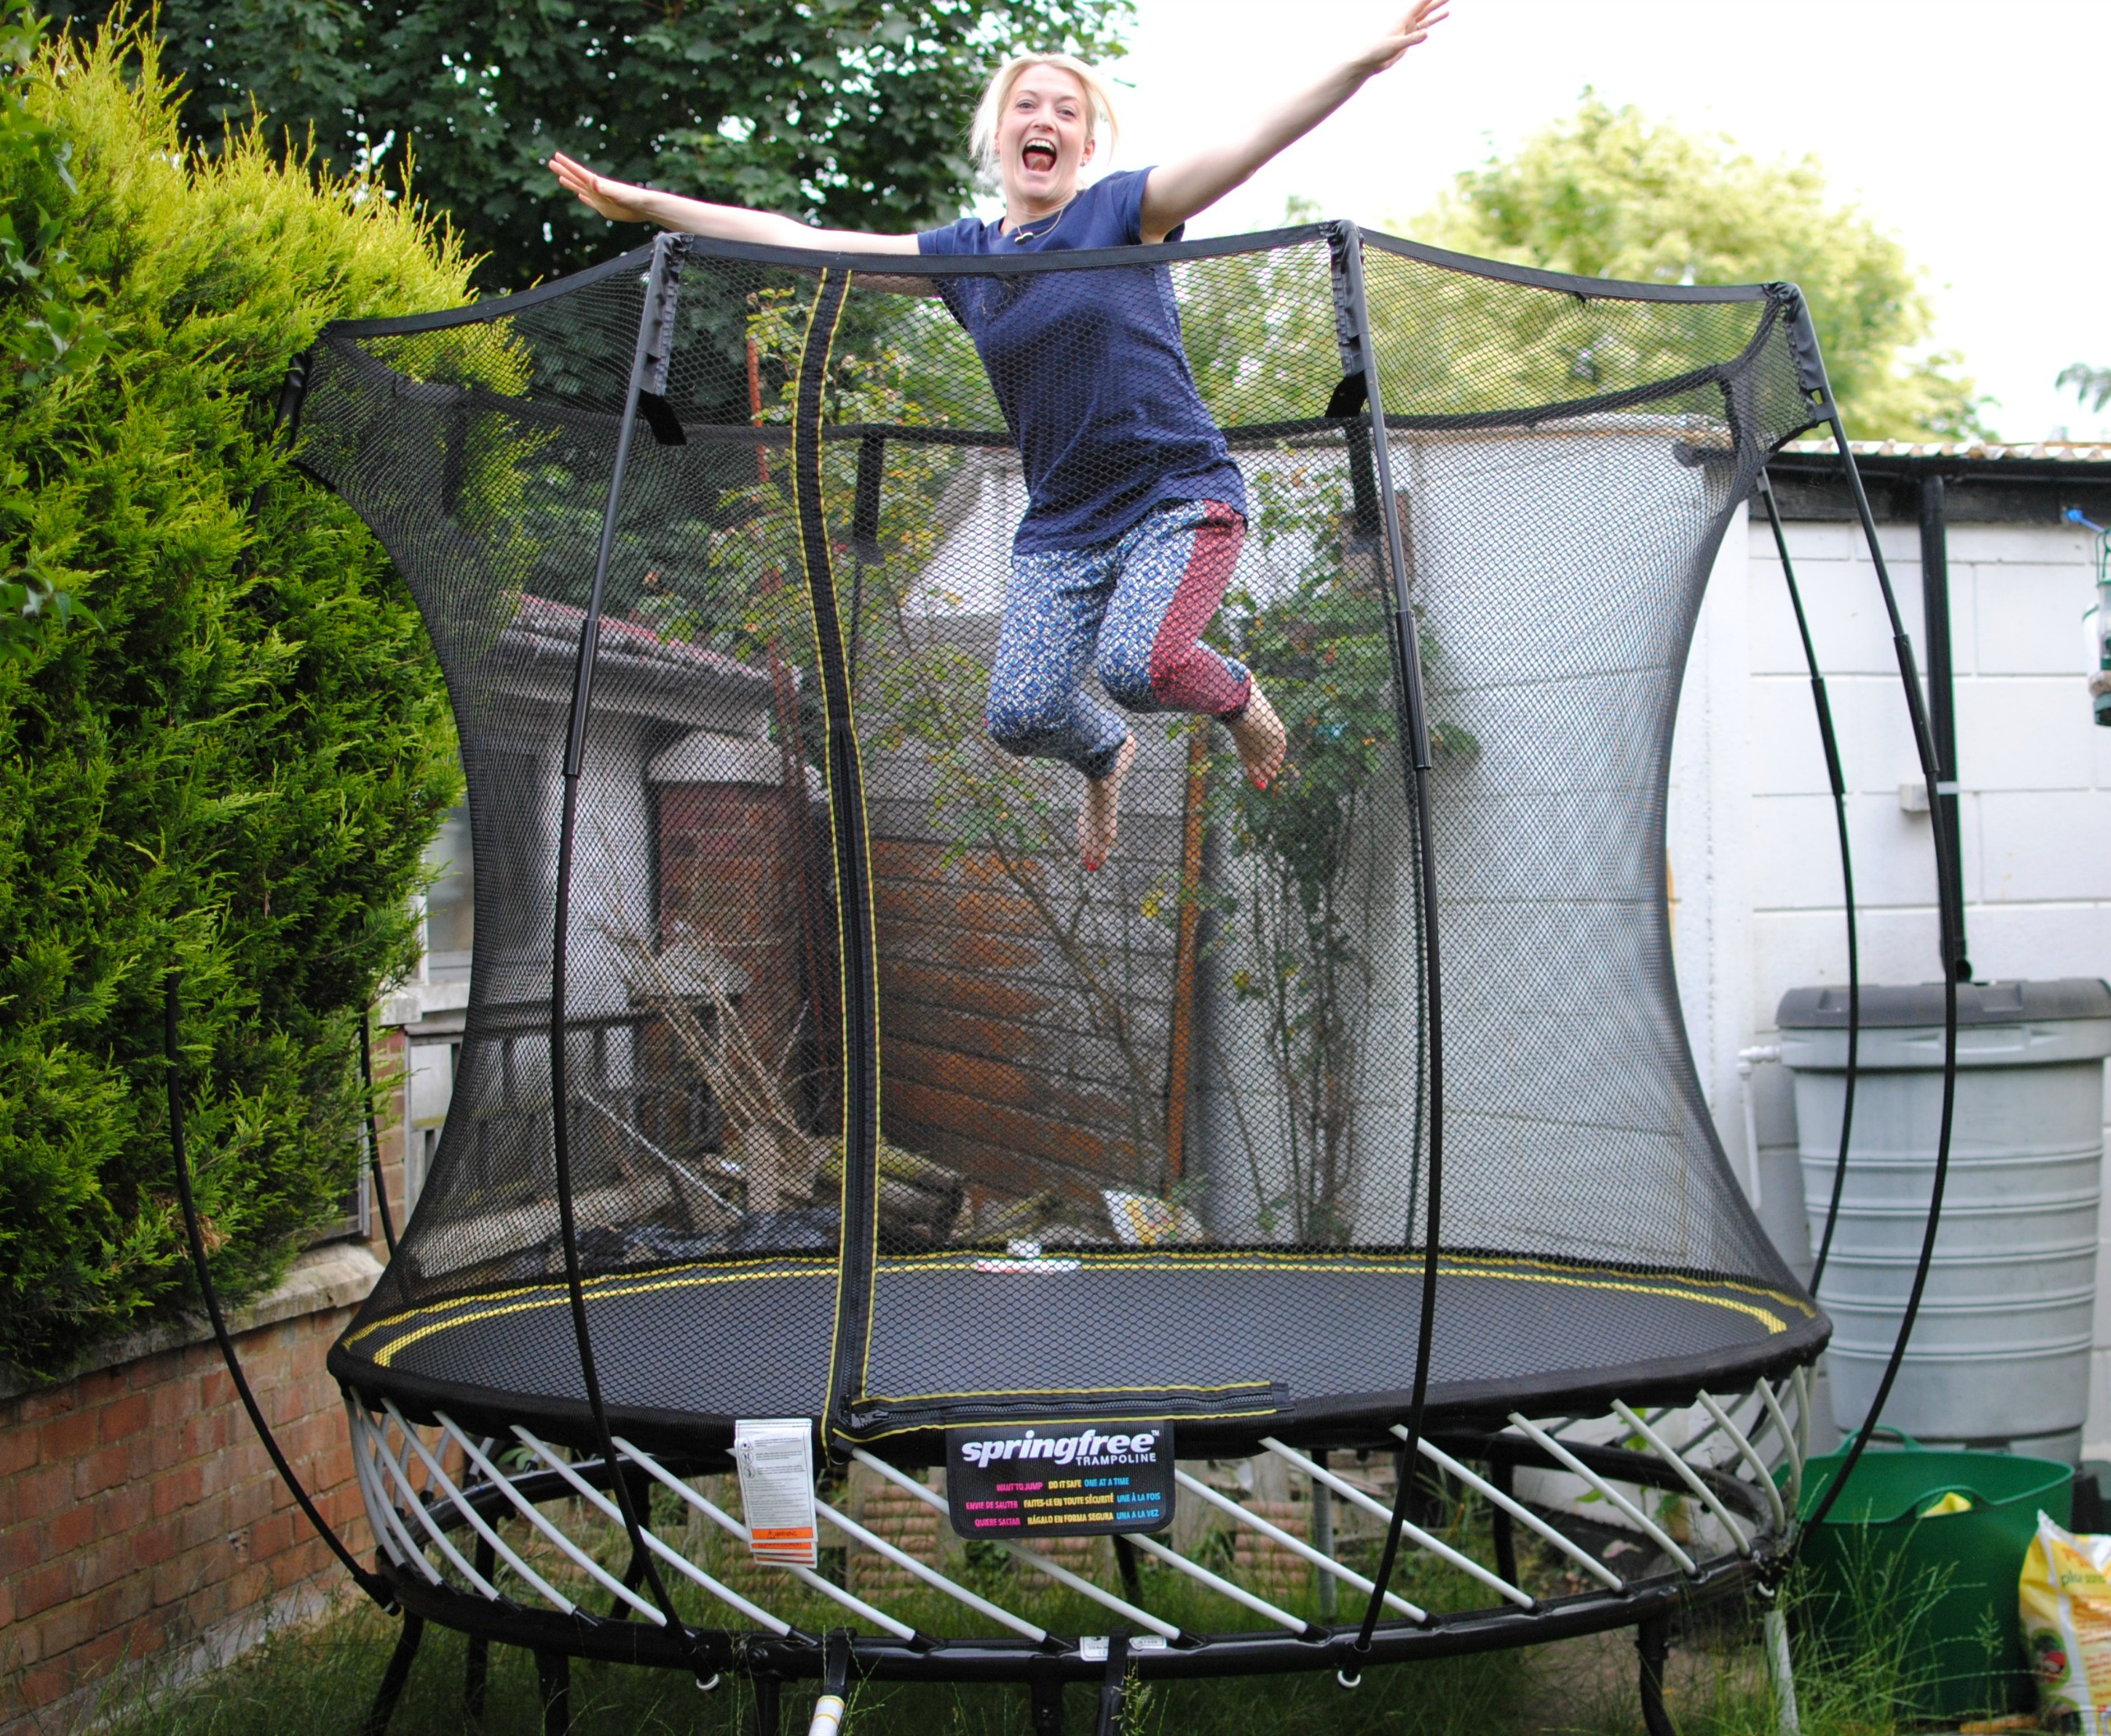 My summer fitness programme with springfree trampolines for Springfree trampoline